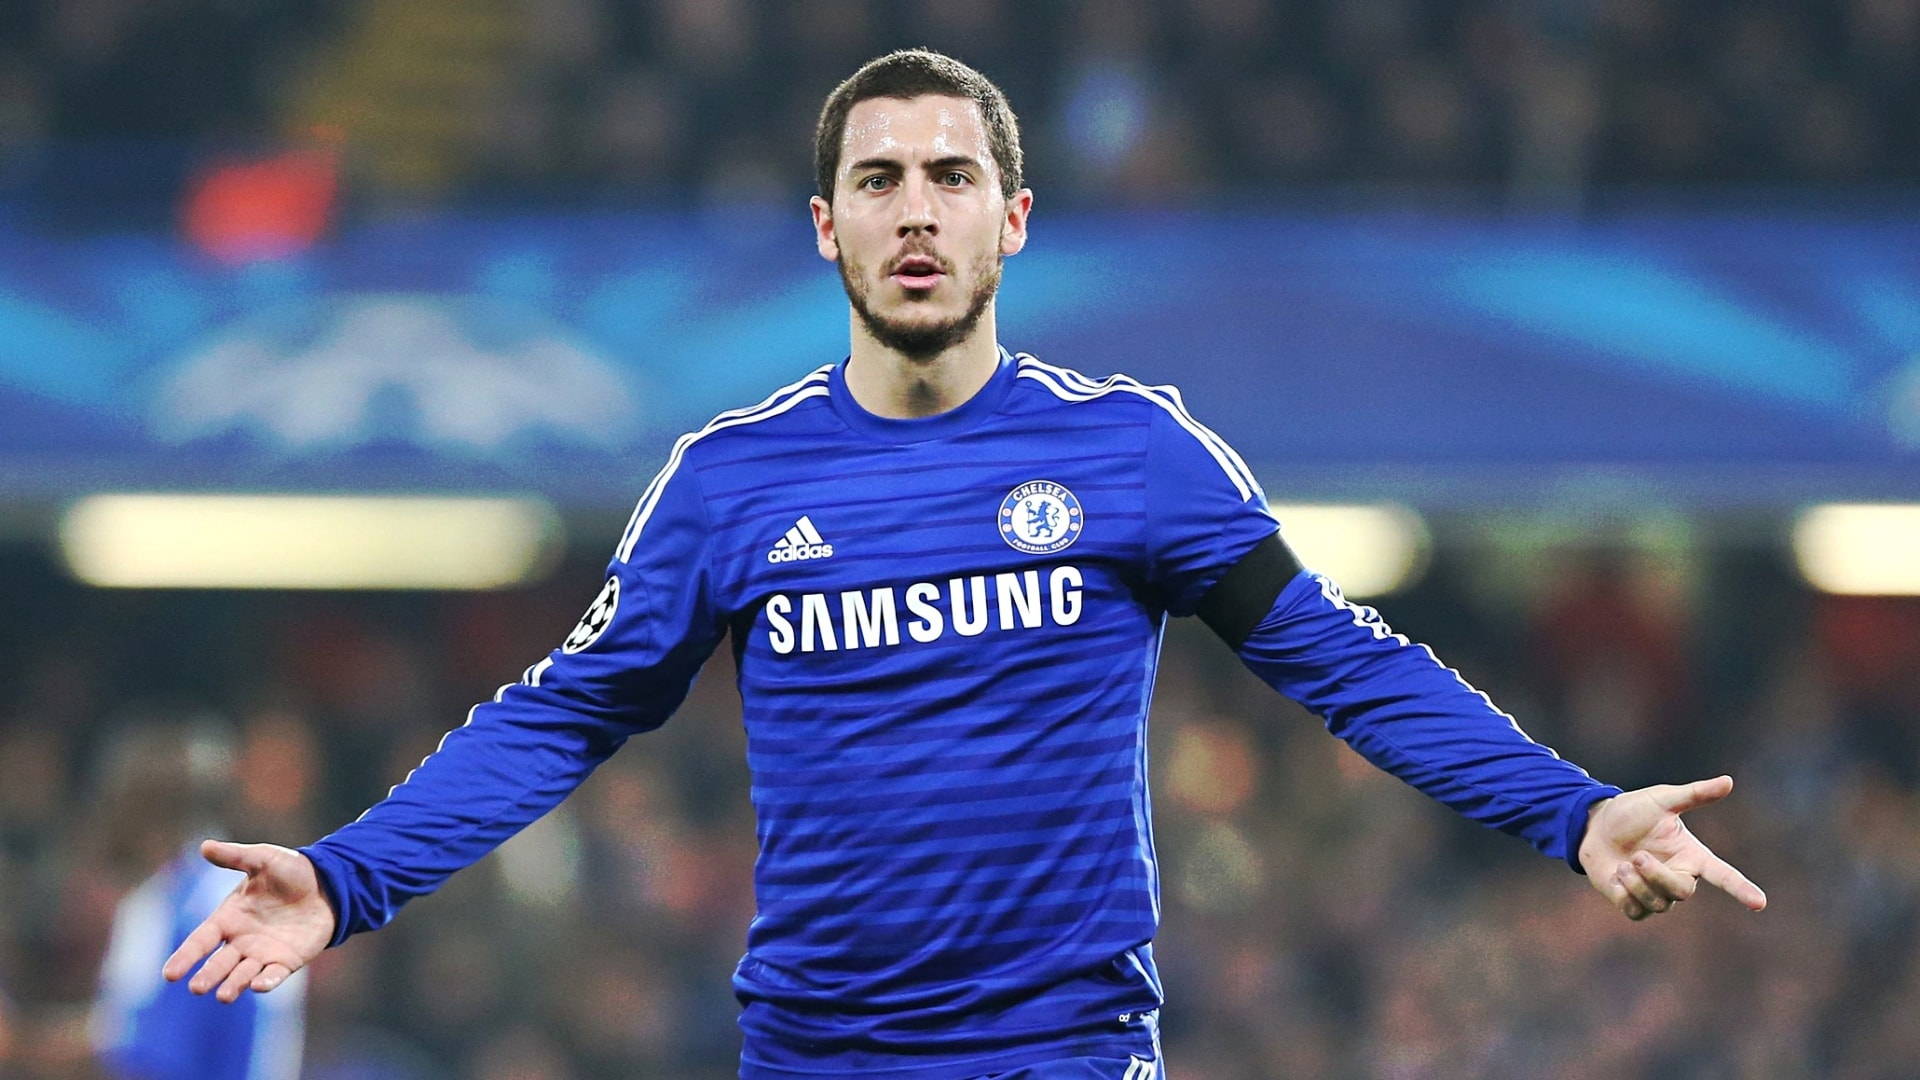 Eden hazard hd desktop wallpapers 7wallpapers eden hazard free voltagebd Image collections